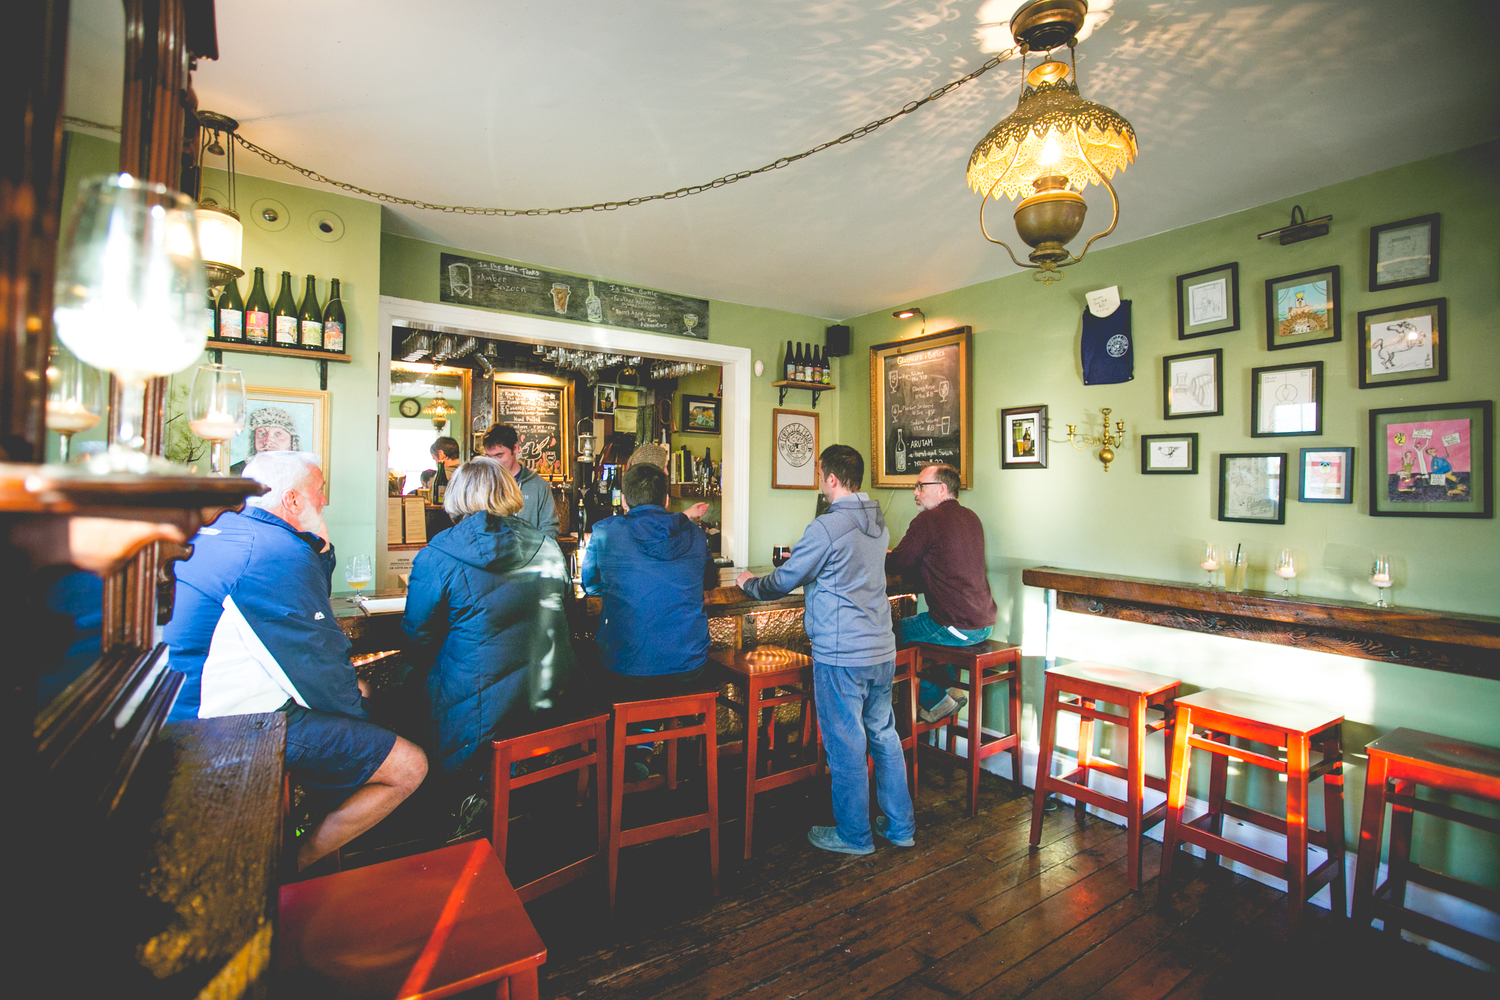 Forest & Main brings charming city style pub to Montco suburbs